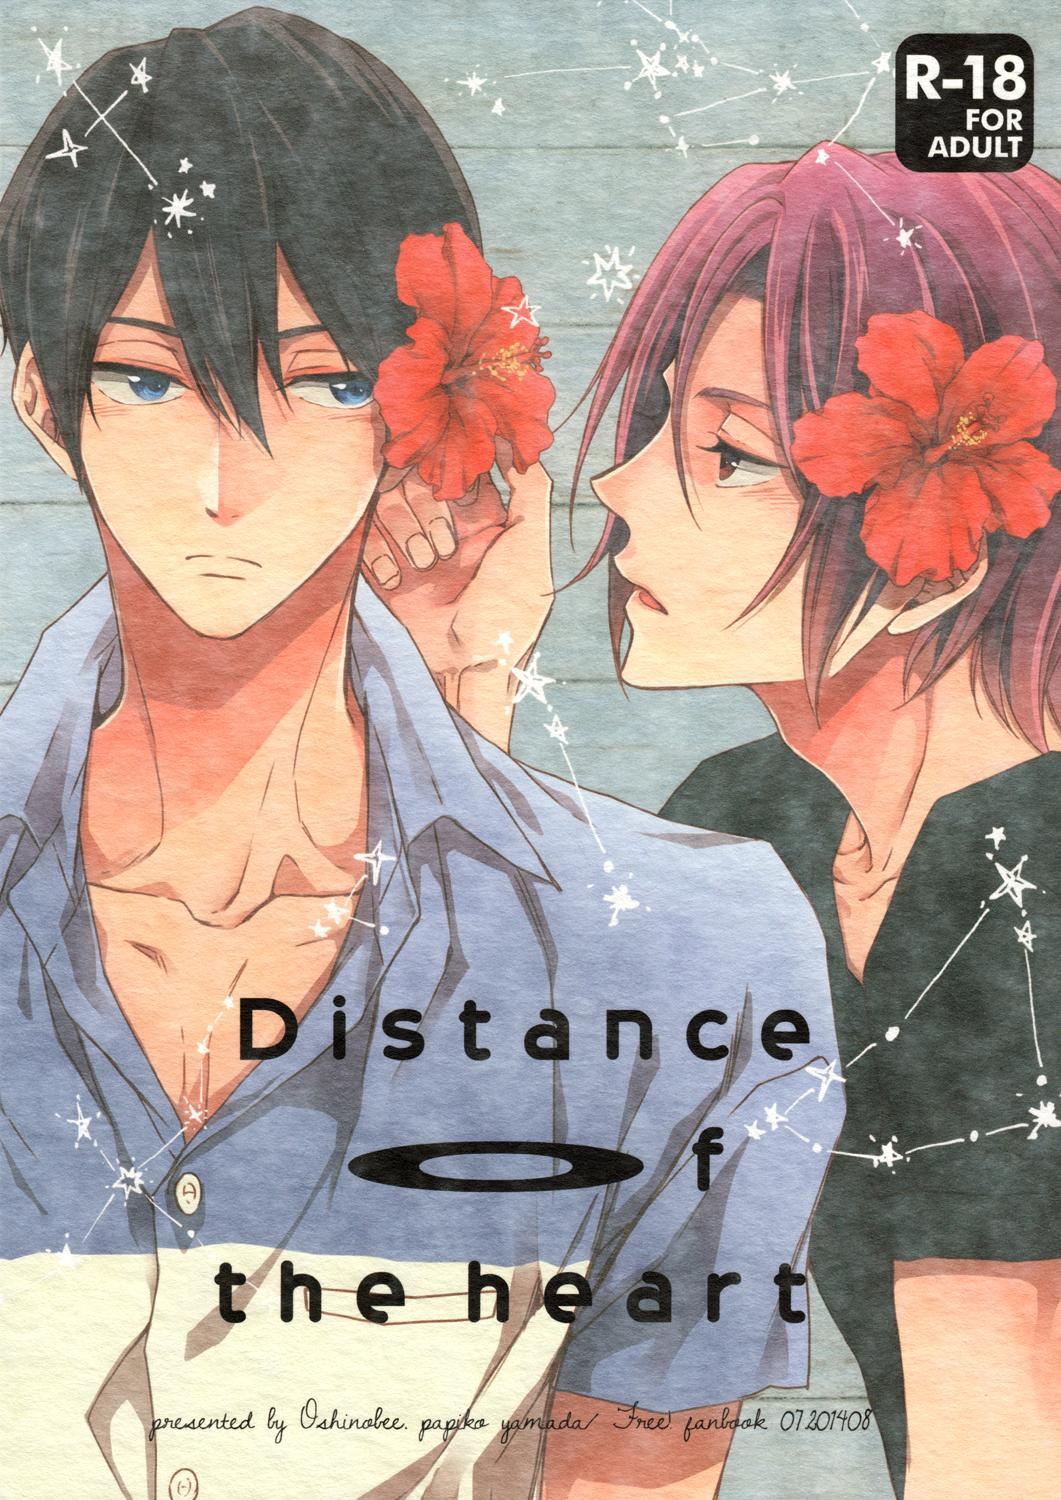 Distance of the heart 0